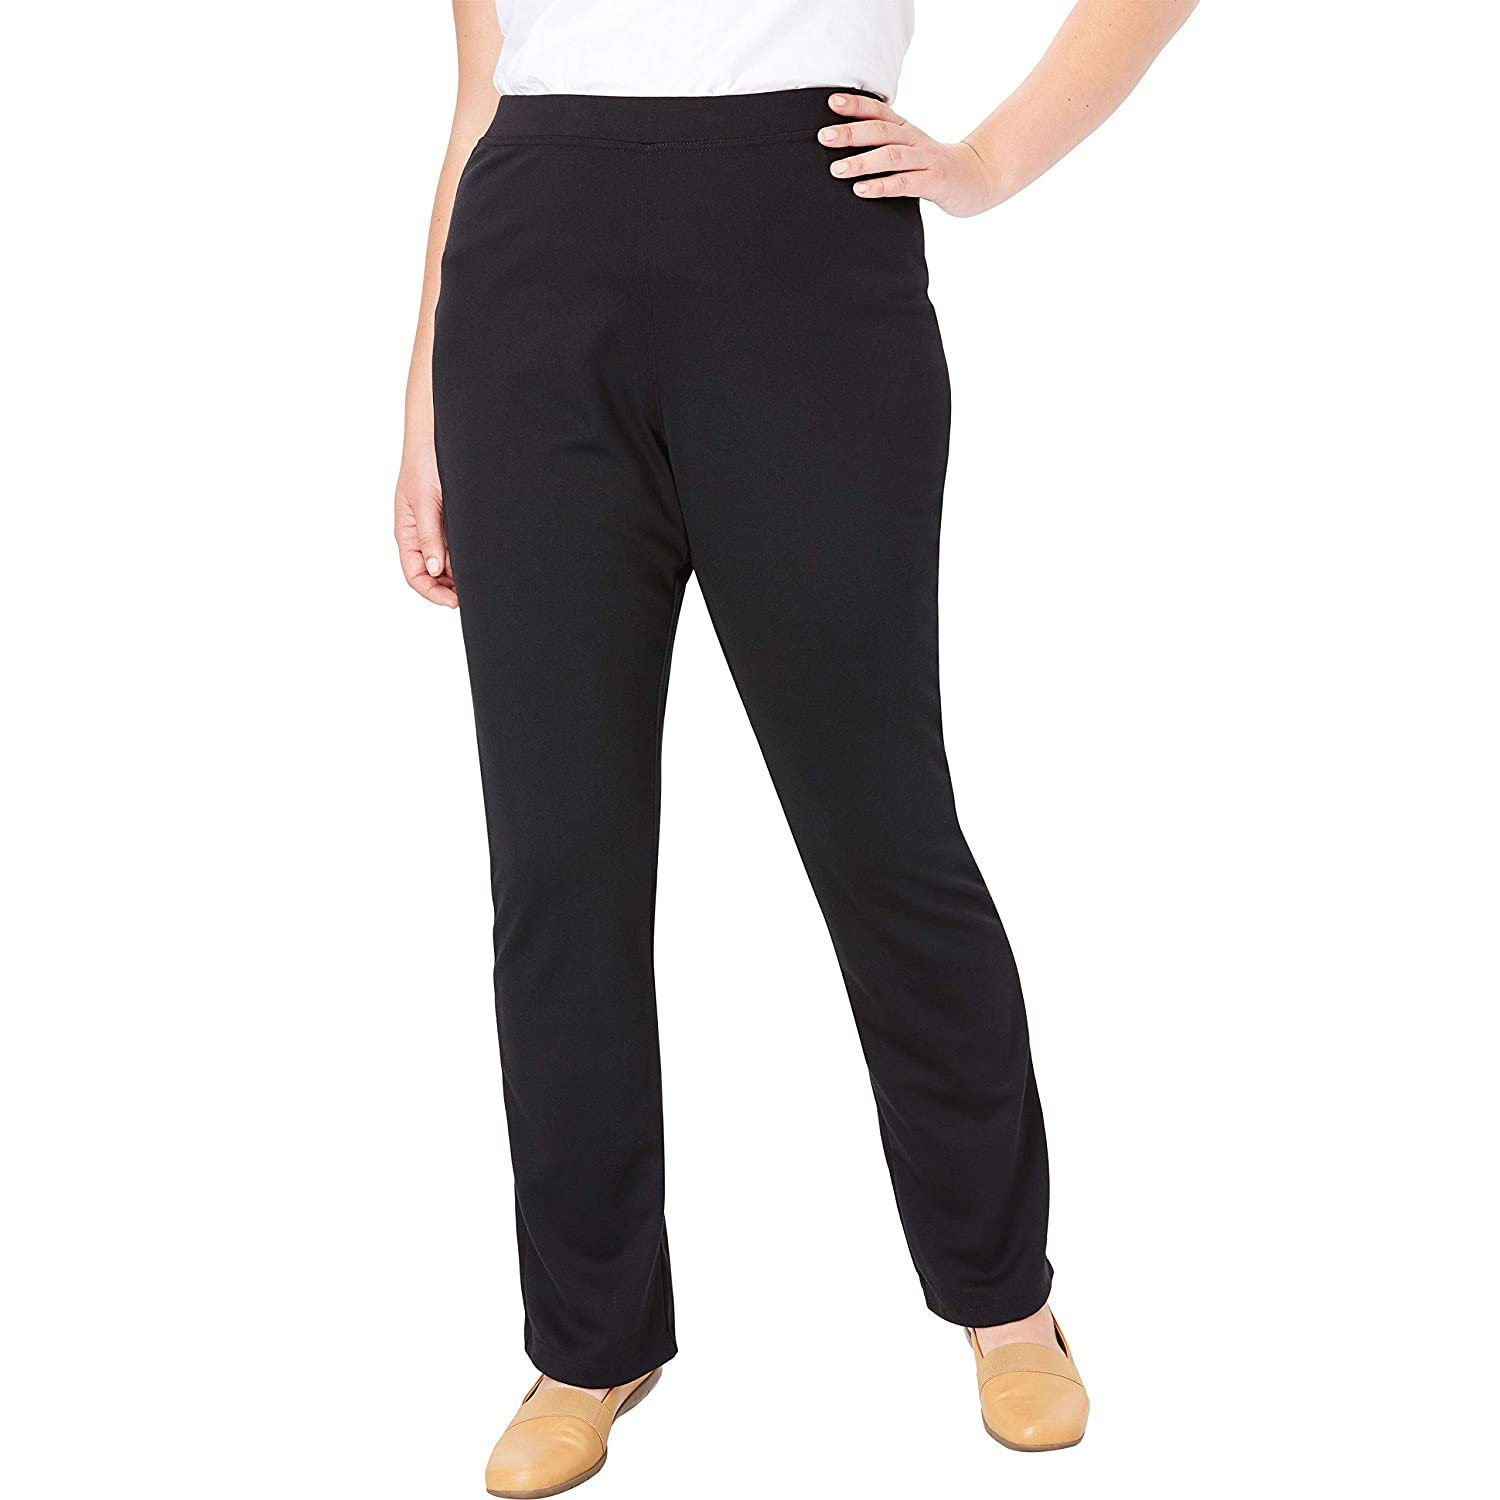 76d9be6c3dc Woman Within Plus Size Bootcut Ponte Stretch Knit Pant at Amazon Women s  Clothing store